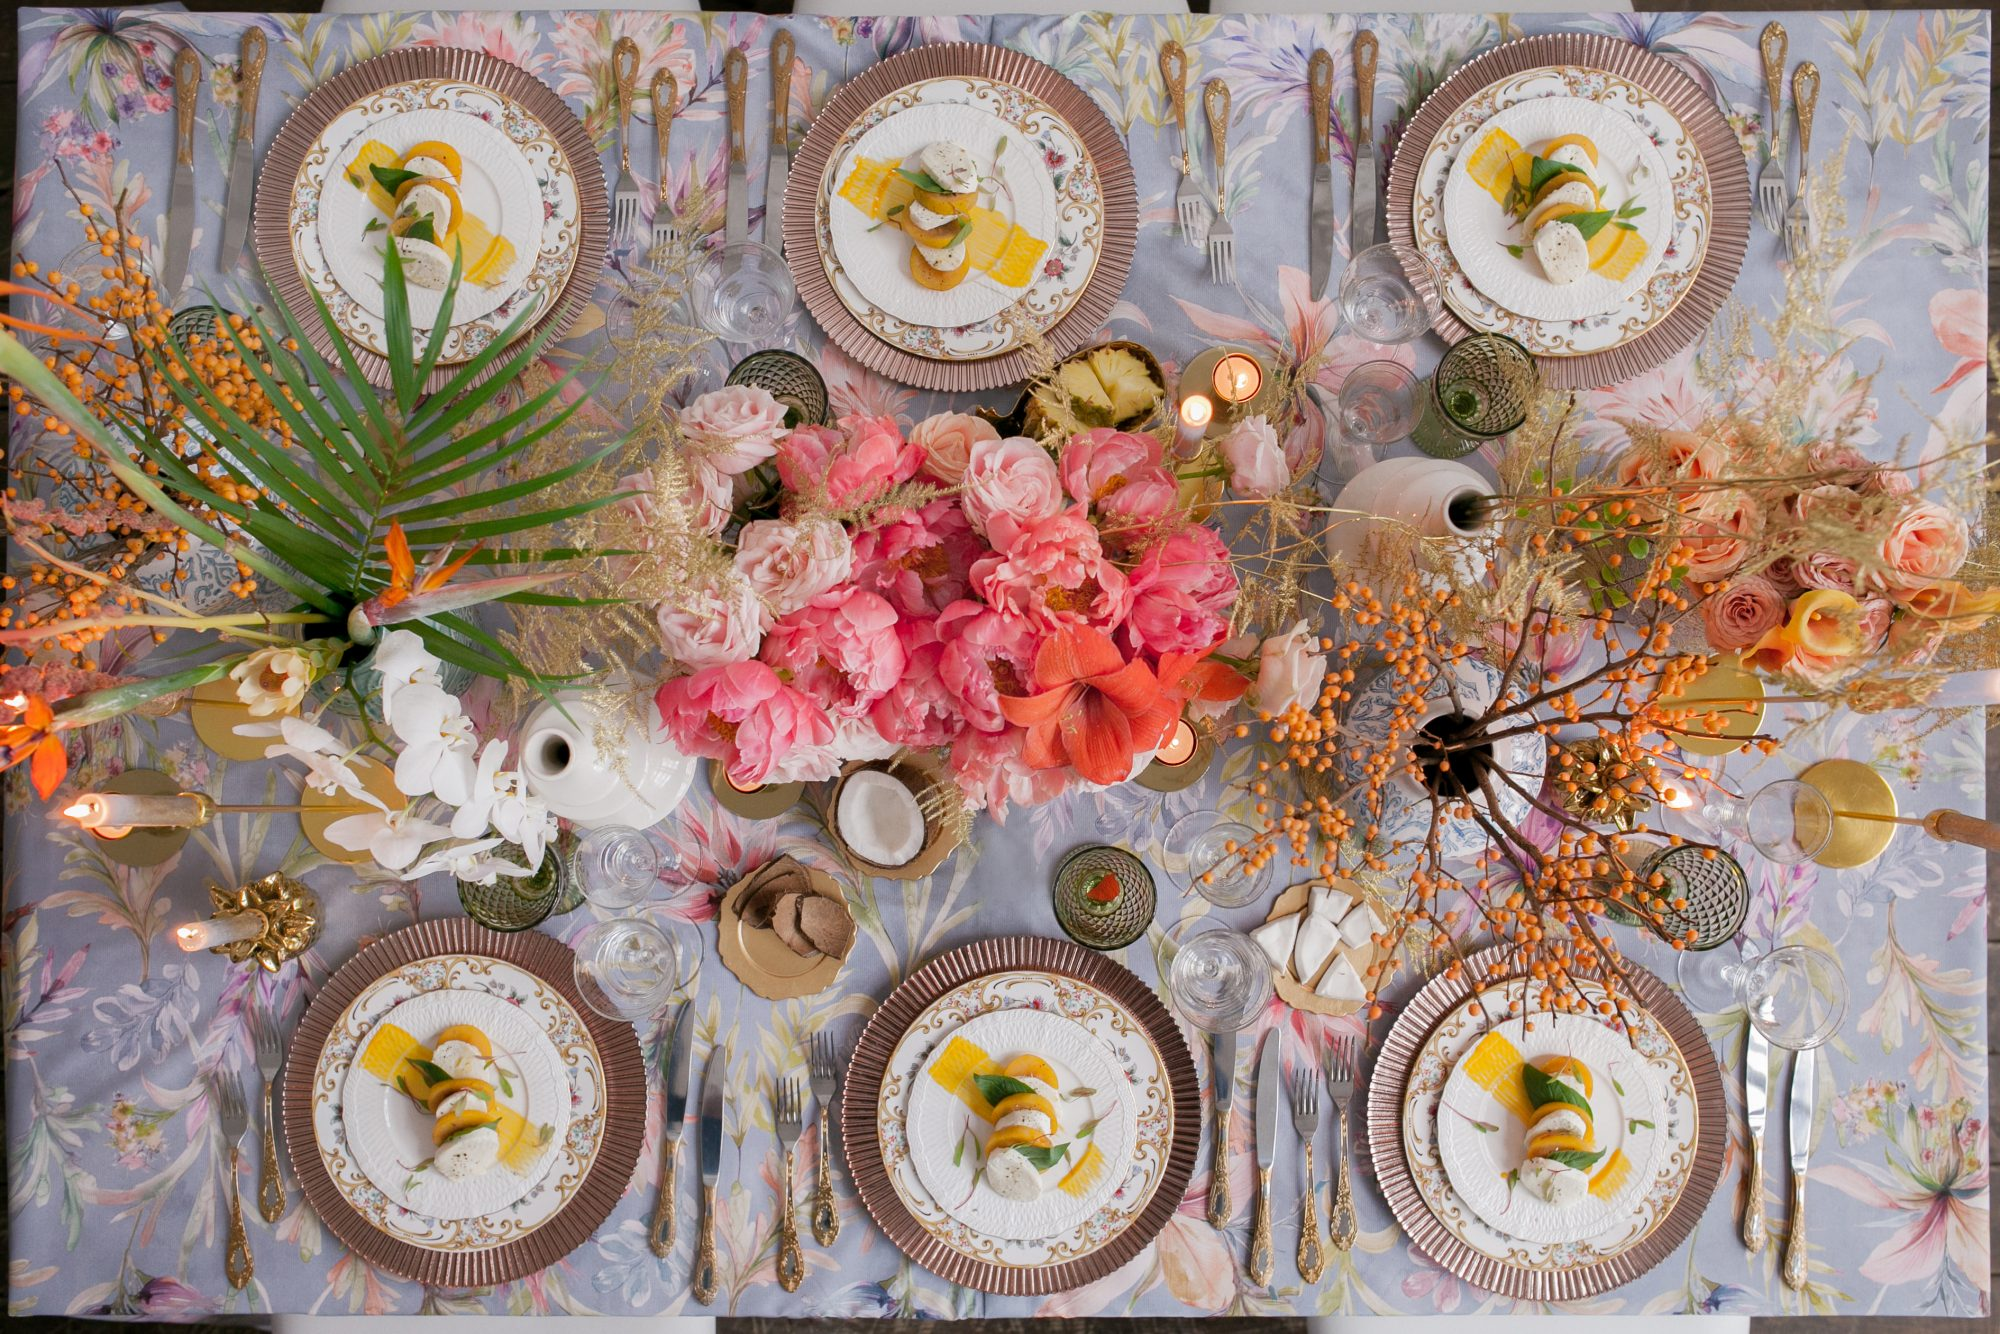 Festive table decor. Many pastel colors. Luxury wedding, party, birthday. Copper chairs and dishes, gold, silver cutlery. Chinese, European, chinoiserie style. candle, mozzarella, persimmons. Above.